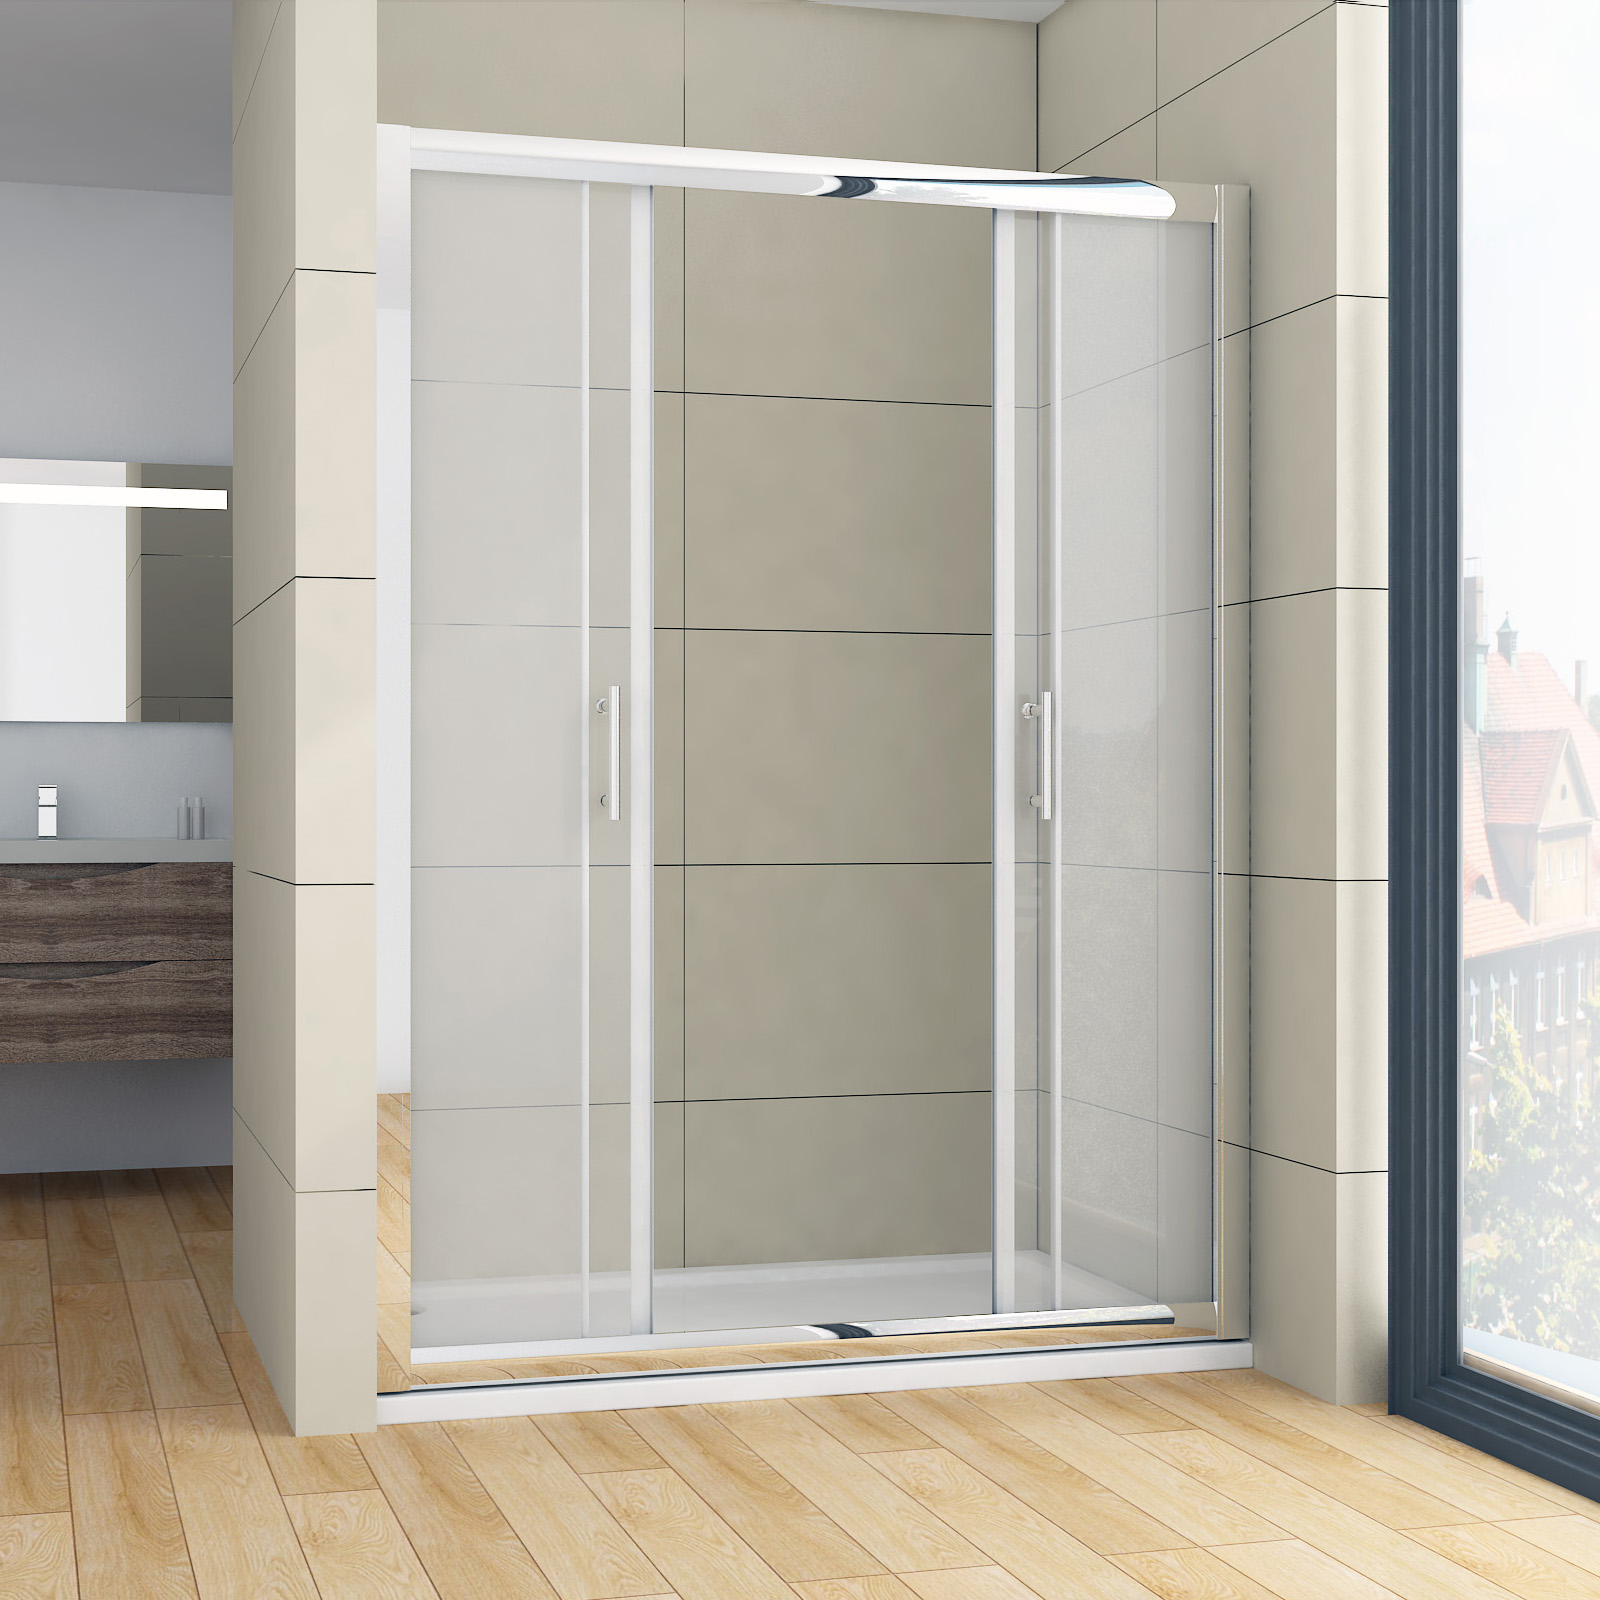 Brand new double sliding doors wall to wall shower screen for New double door